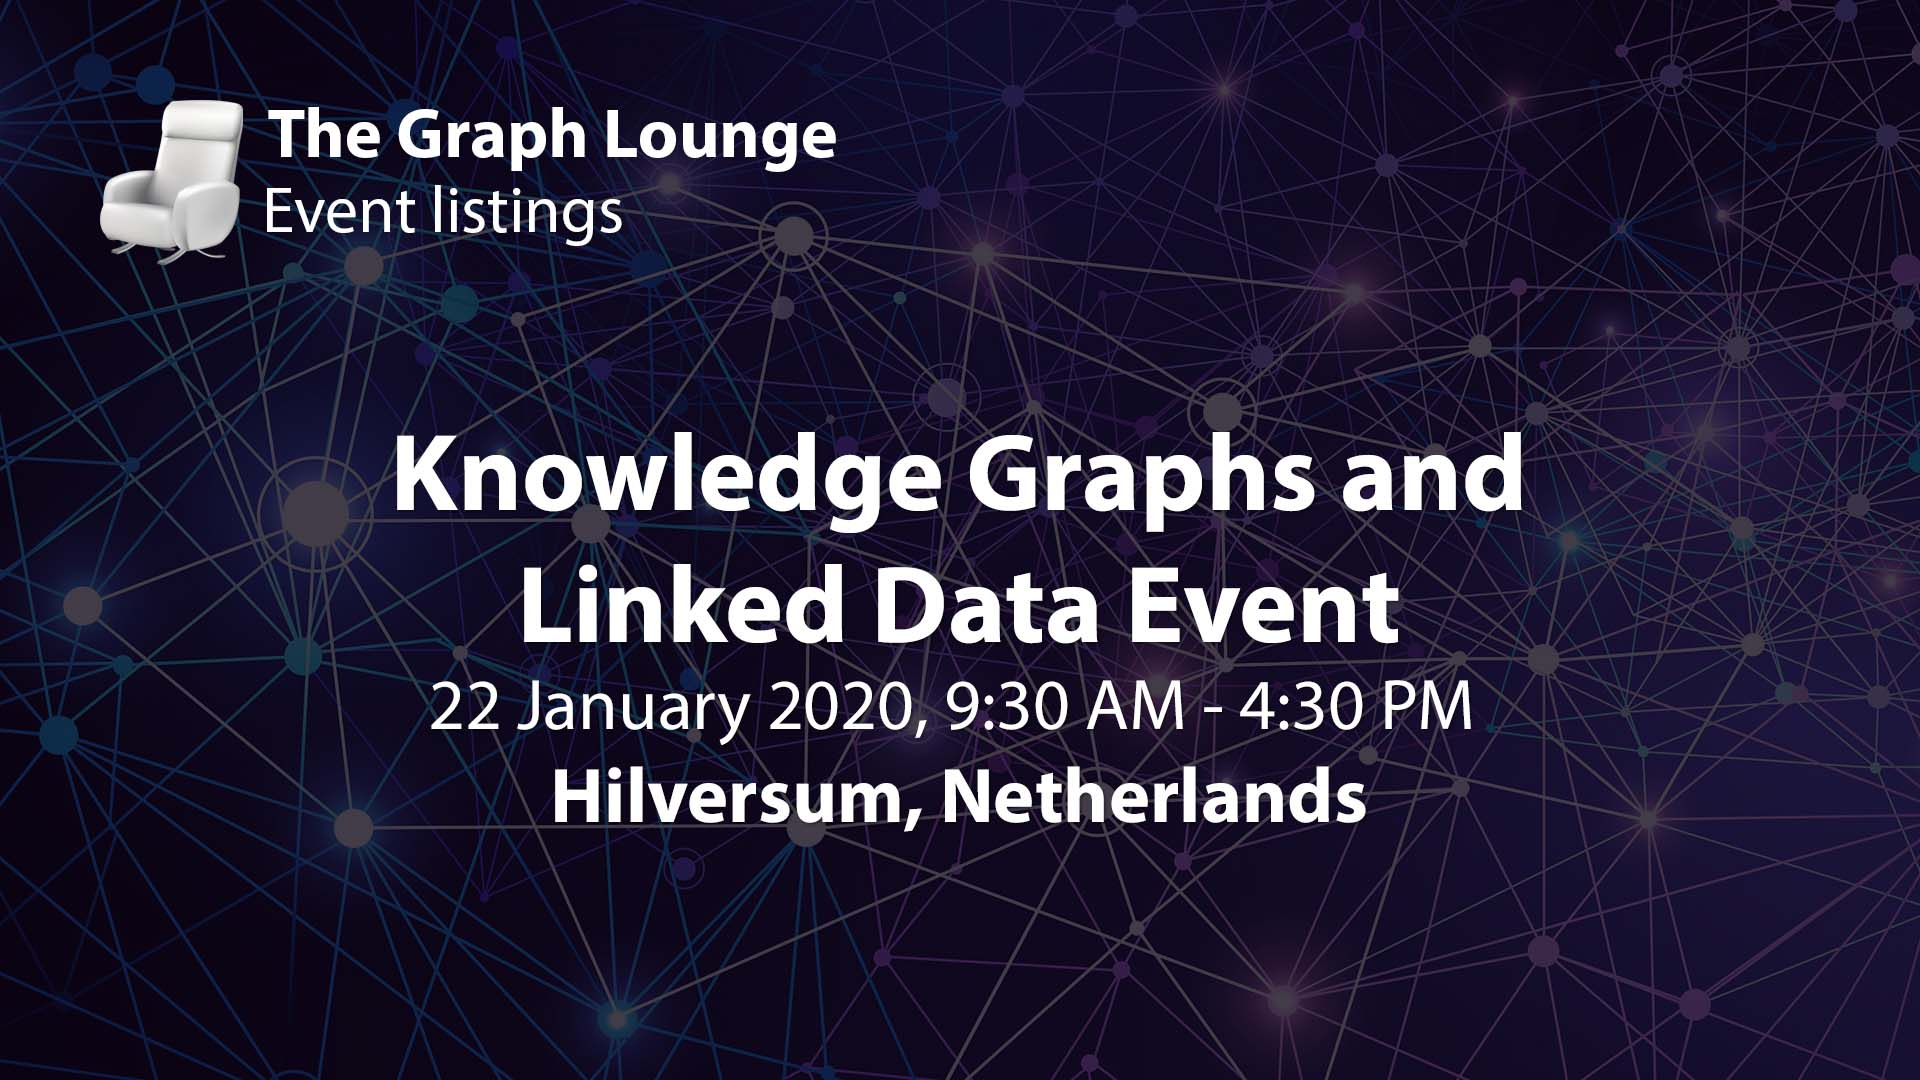 Knowledge Graphs and Linked Data Event